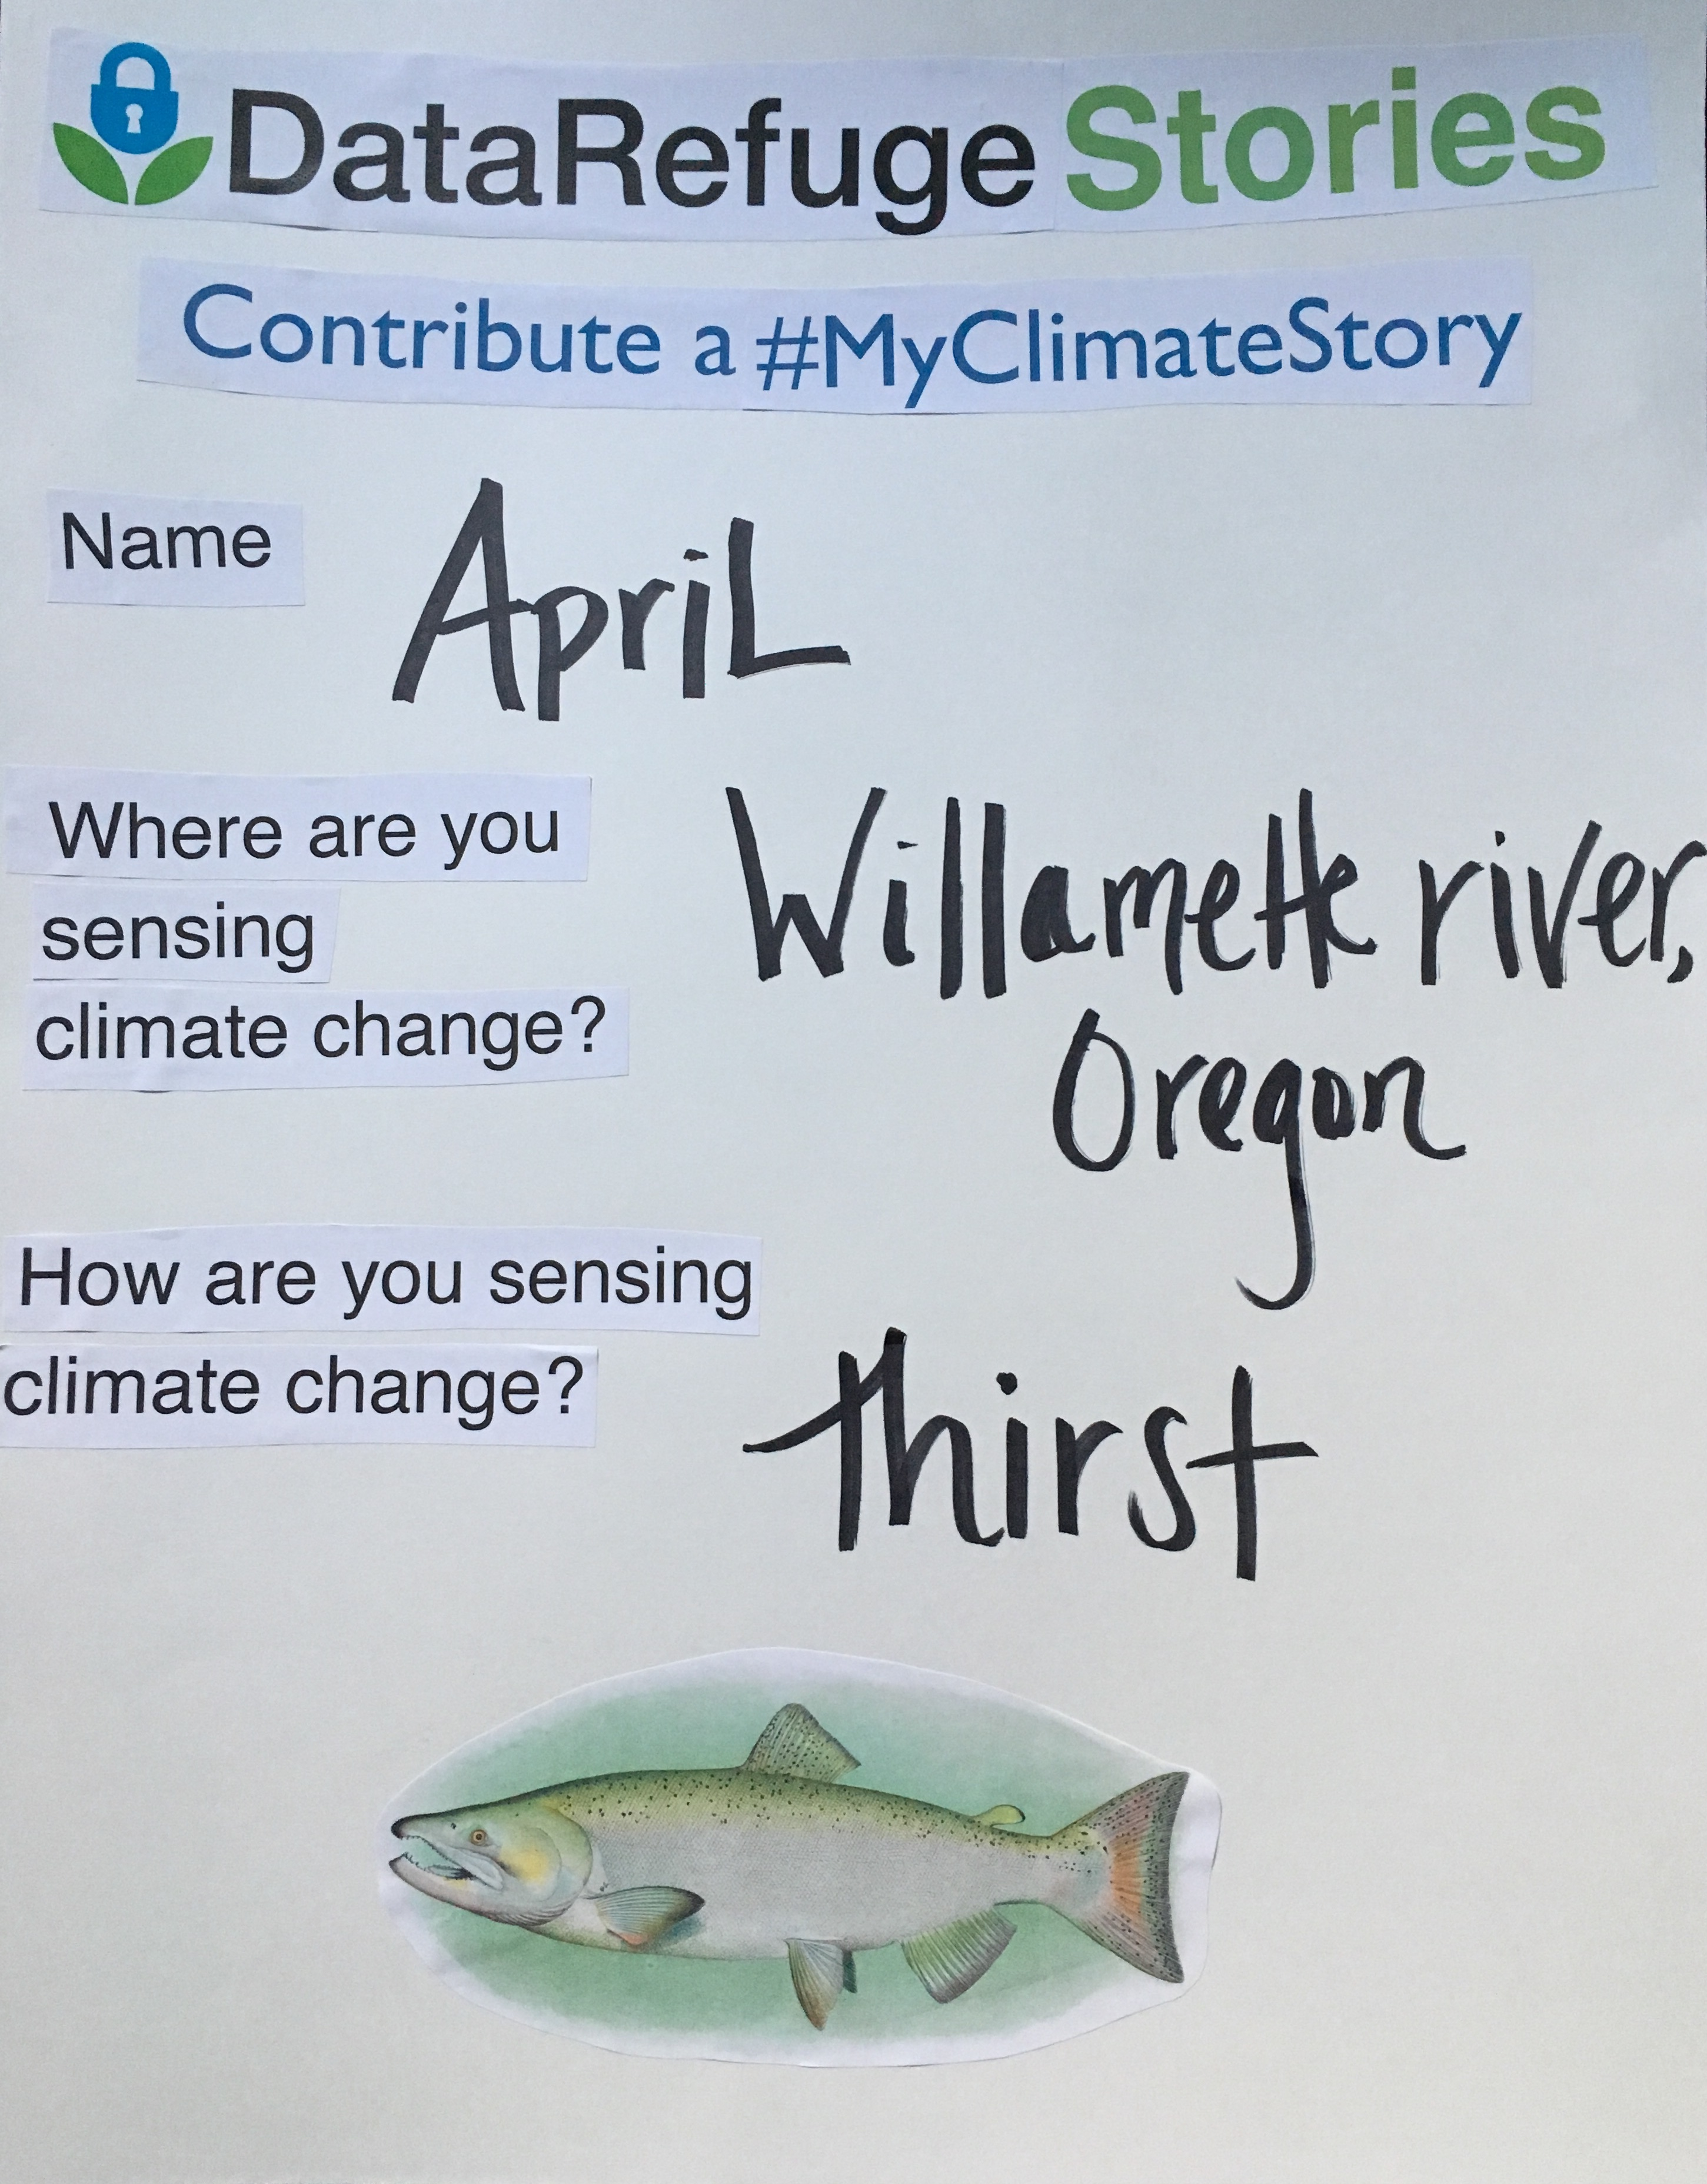 A poster depicting the My Climate Story Submission Form with an image of a fish from the Willamette River, OR